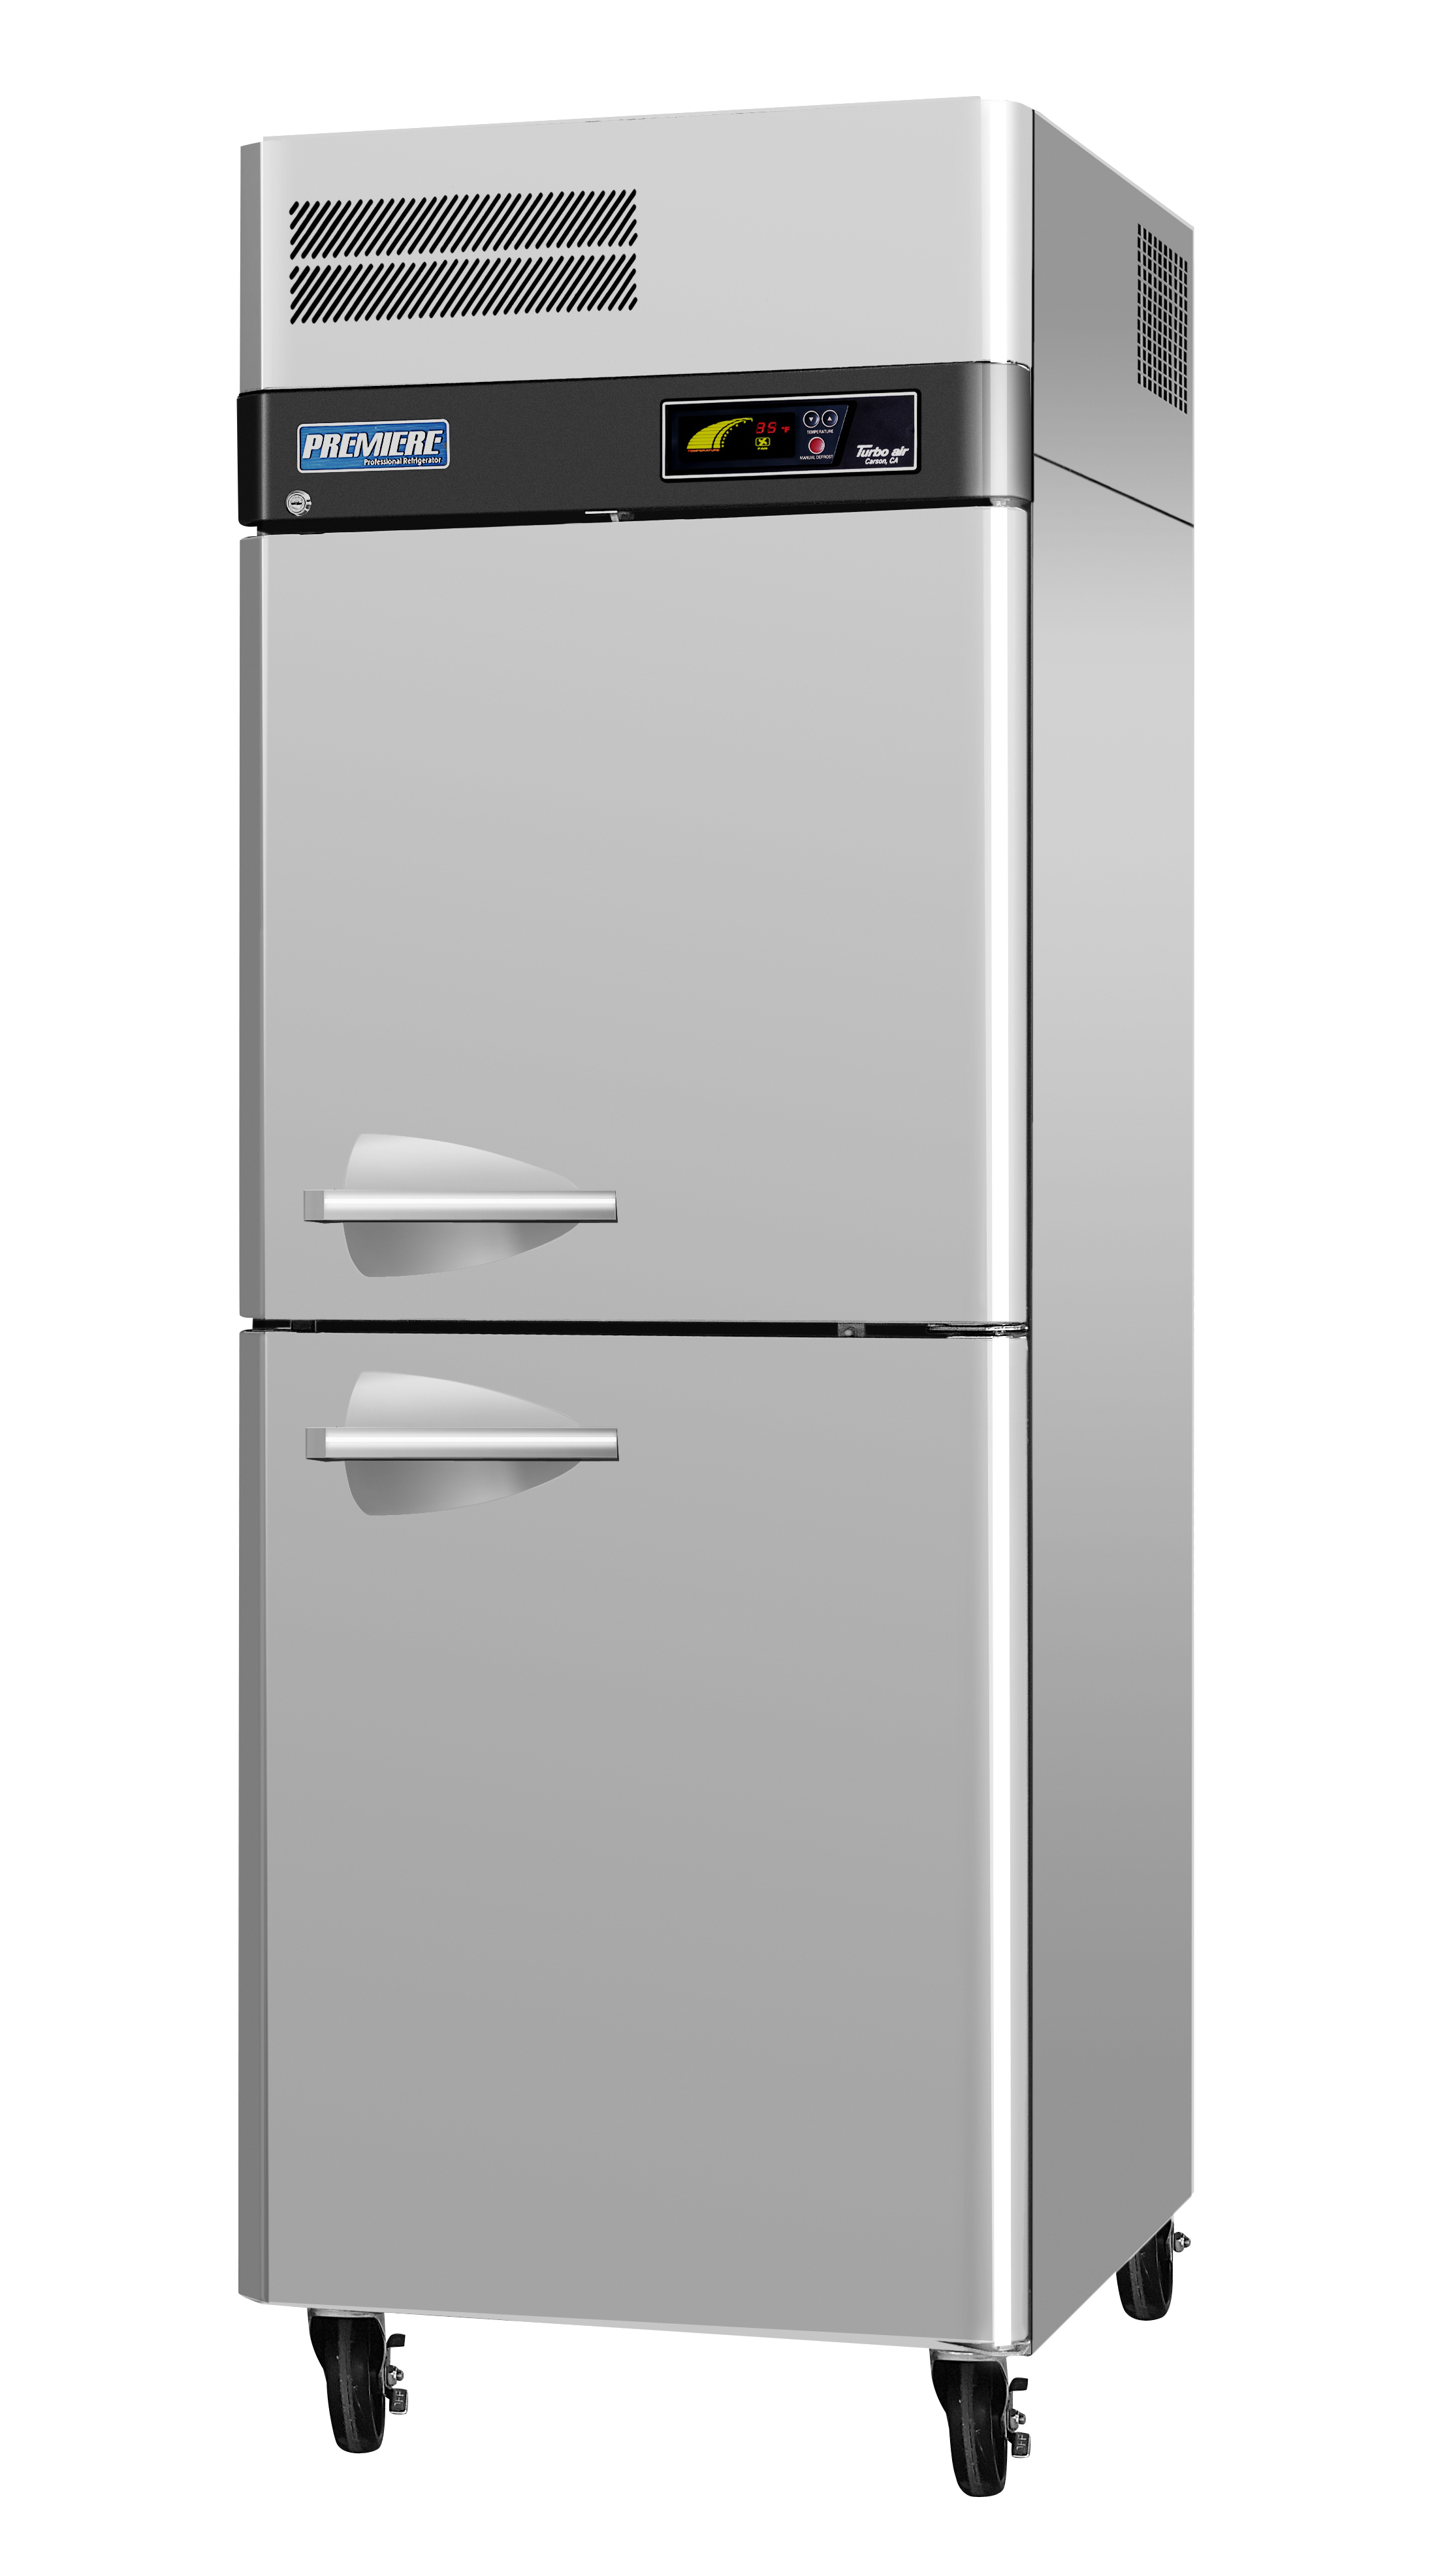 Premiere PRO Series Refrigerator, reach-in, one-section